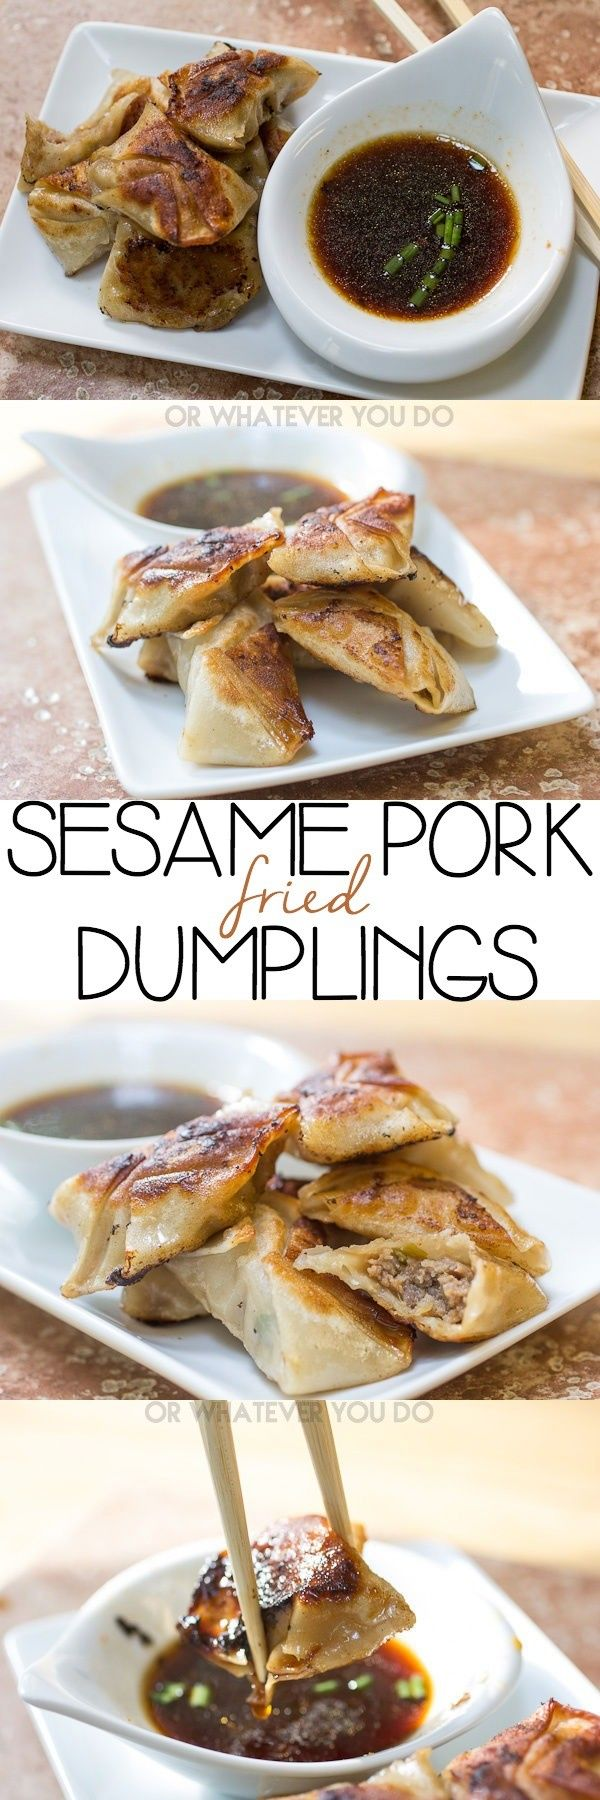 Fried Sesame Pork Dumplings